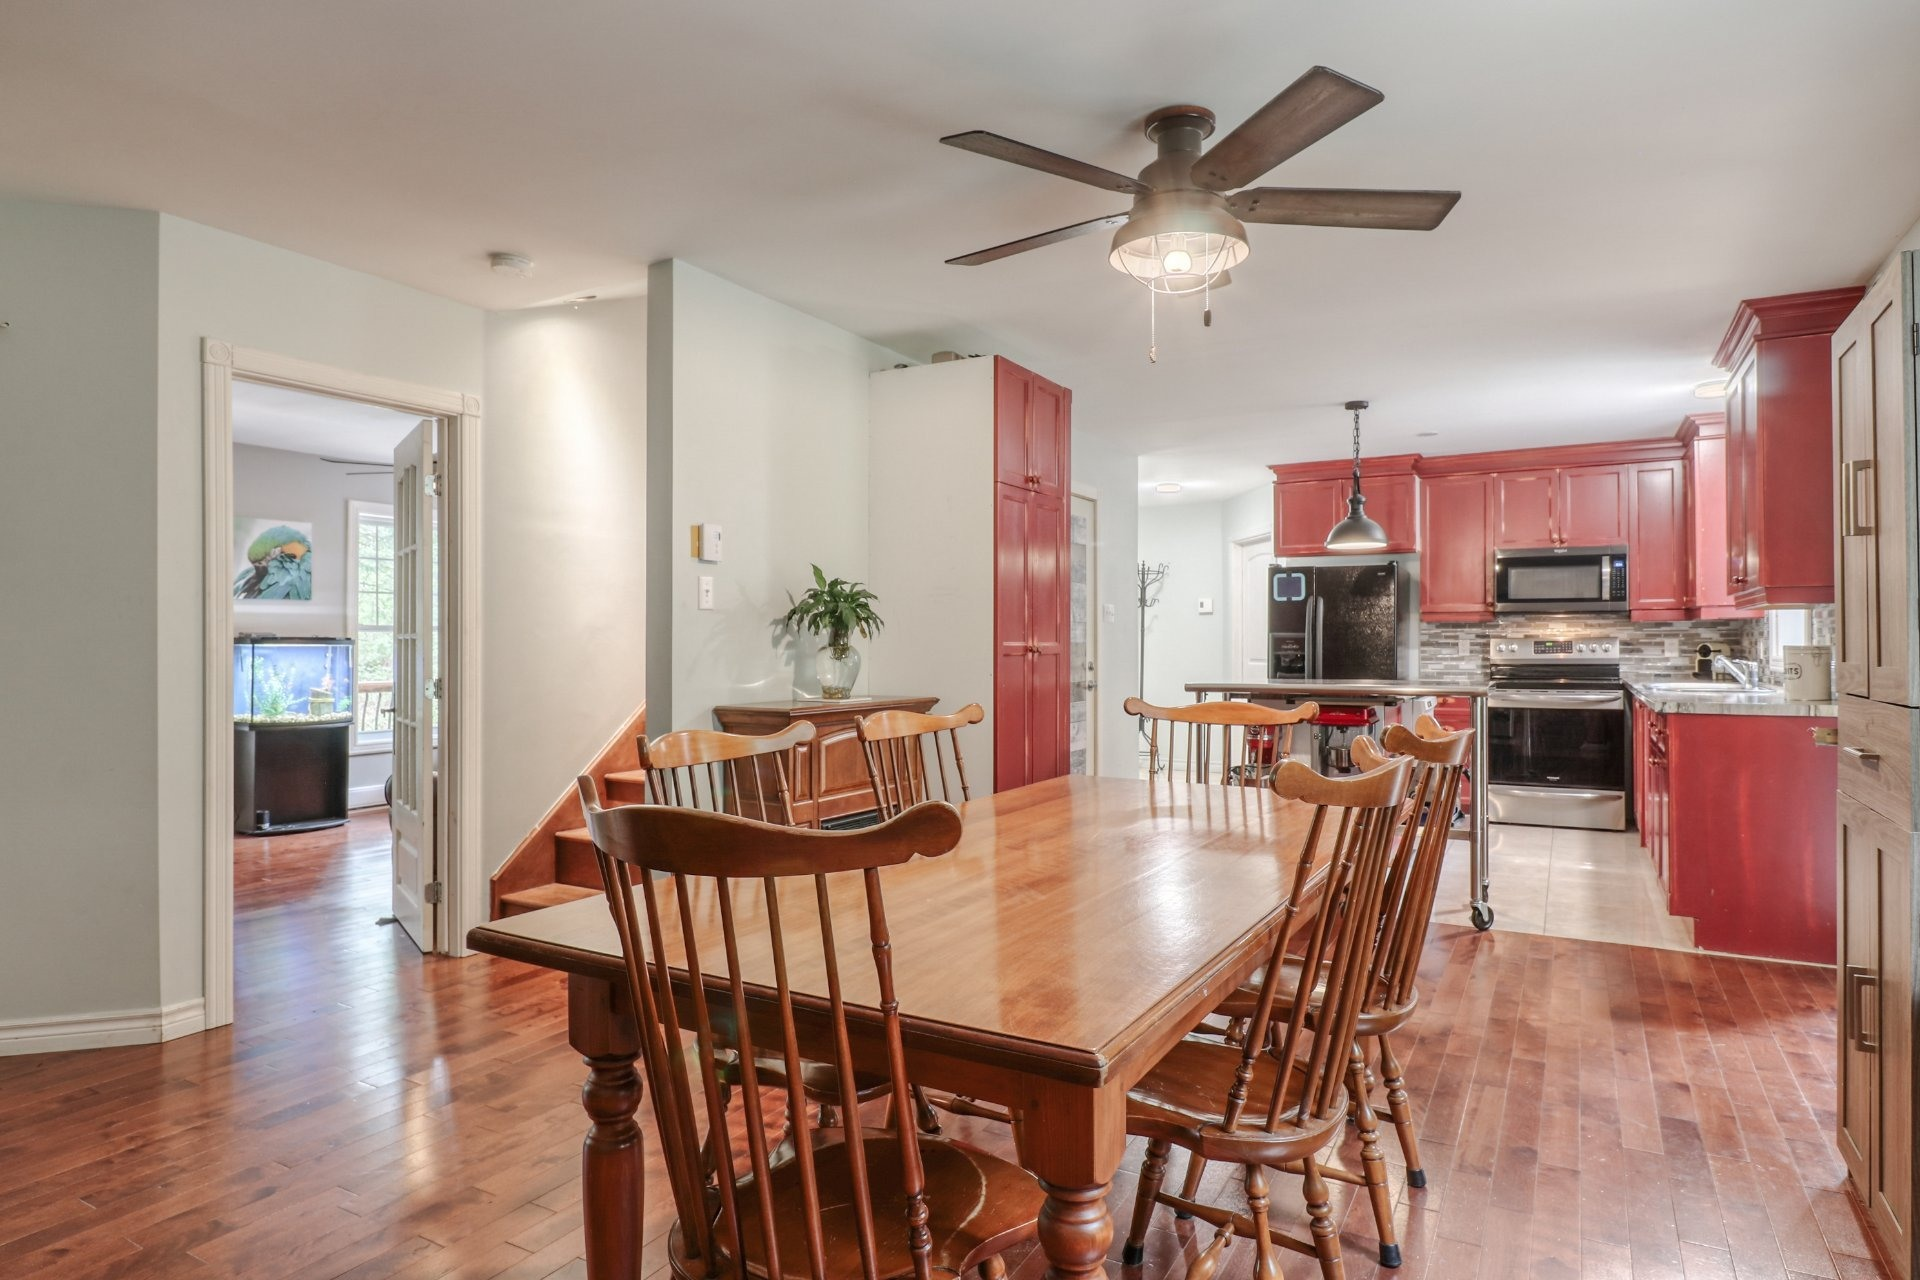 image 6 - House For sale Rawdon - 9 rooms